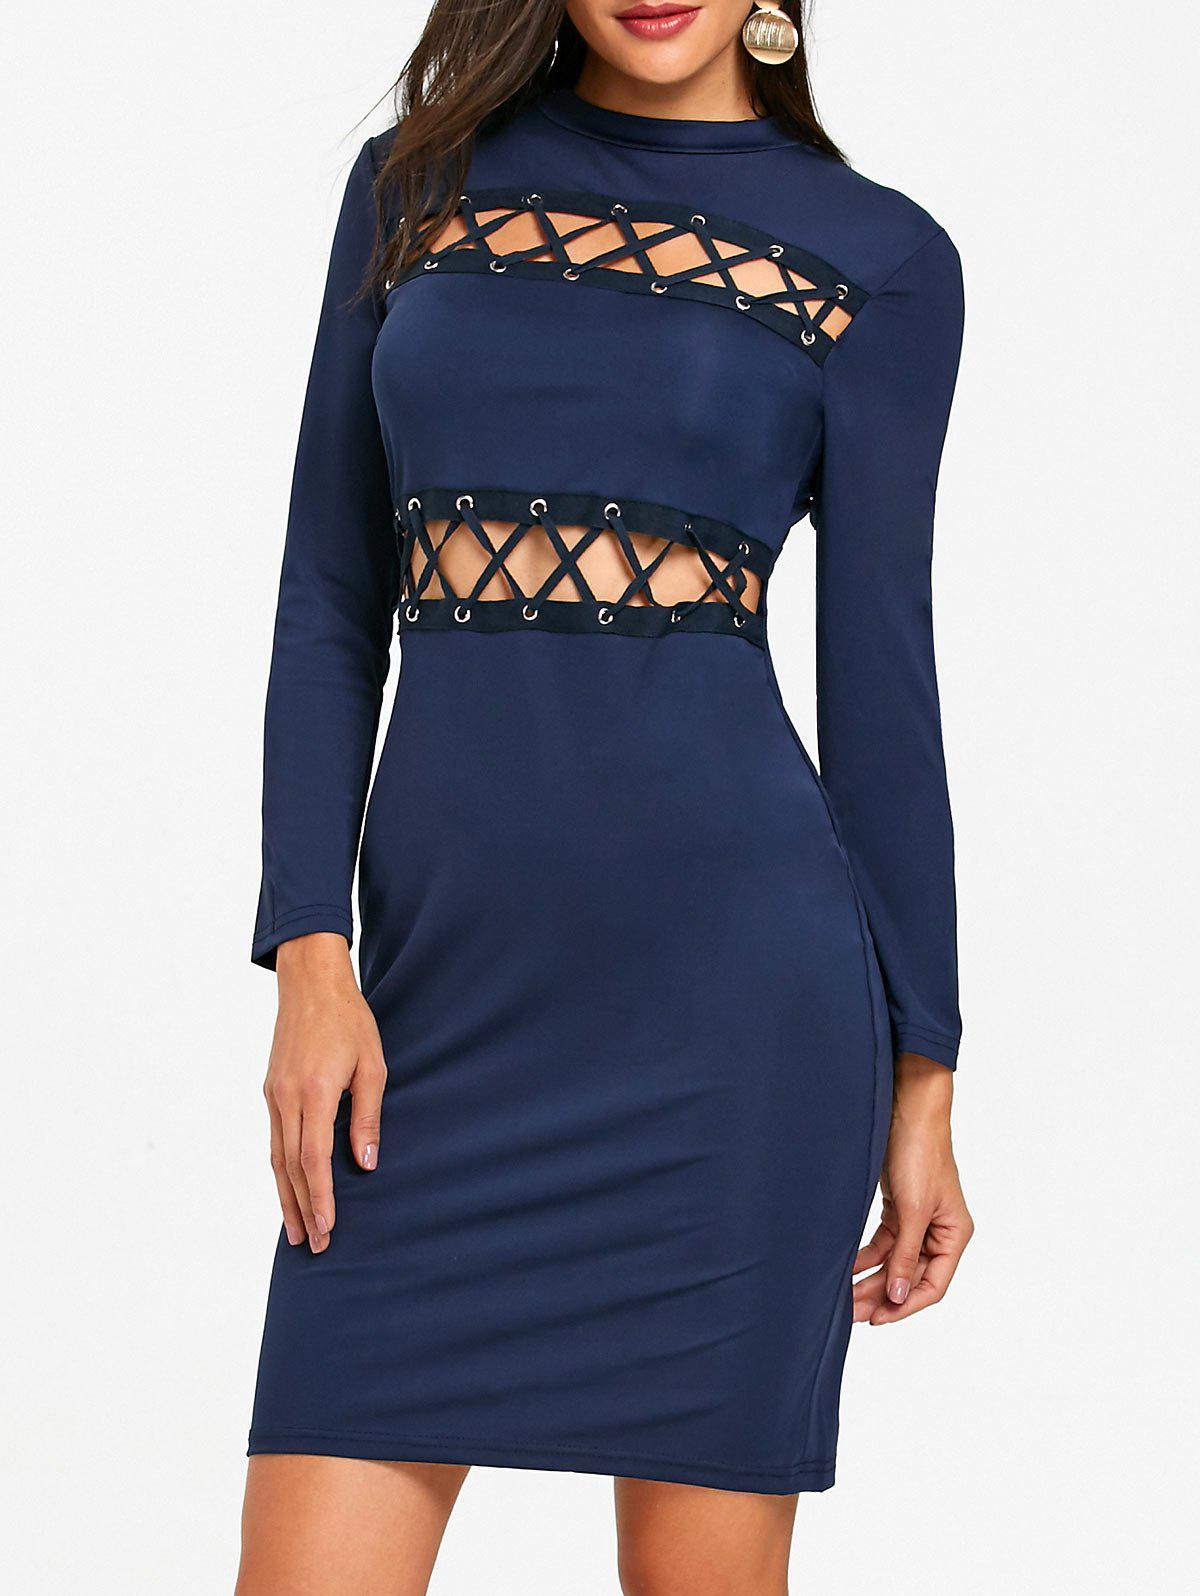 Tight Lace Up Hollow Out Club Dress - PURPLISH BLUE M